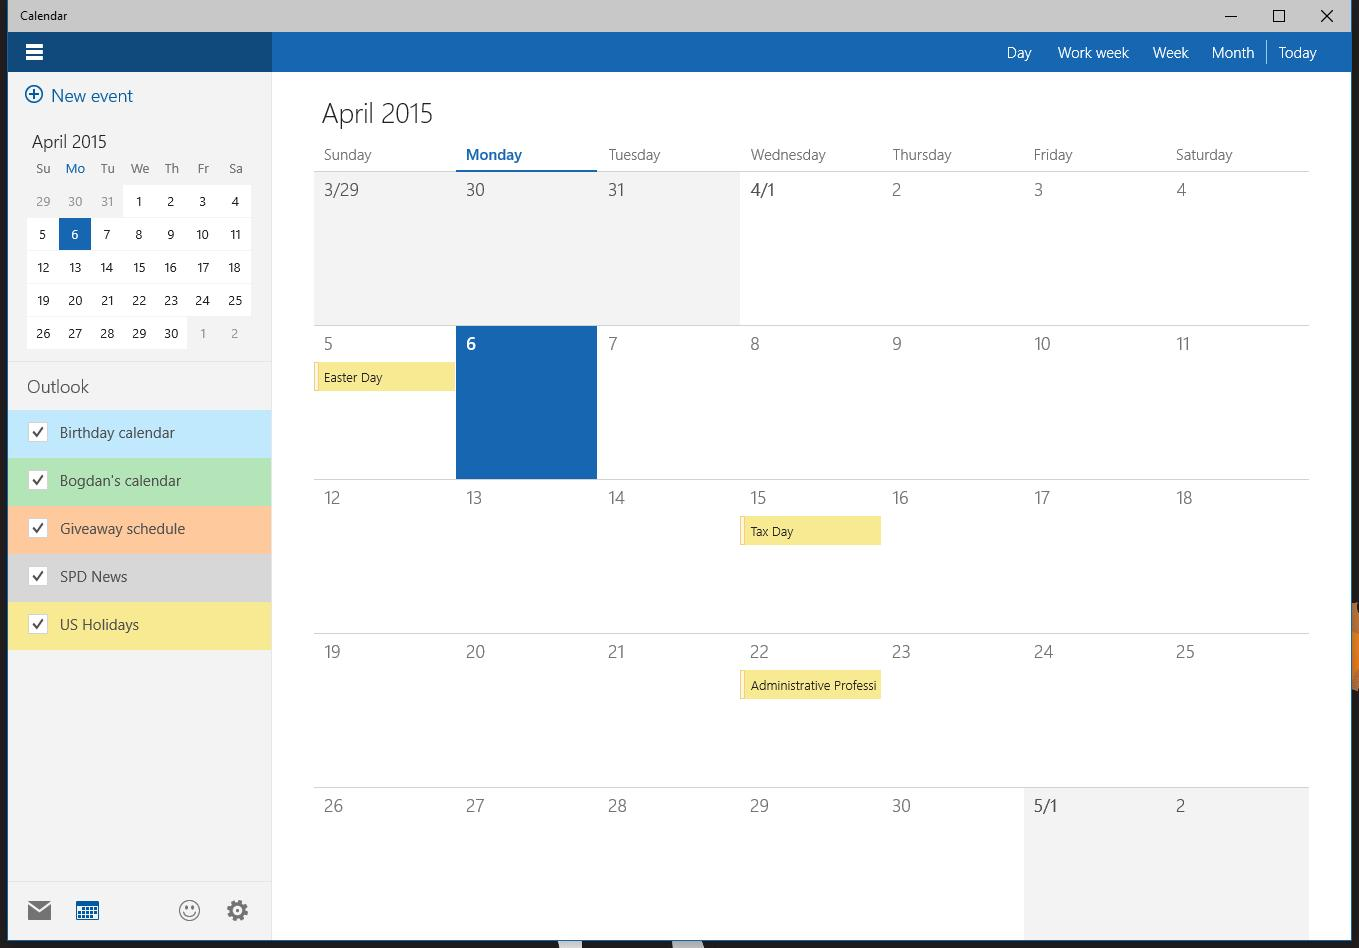 Calendar App : This is the new windows calendar app